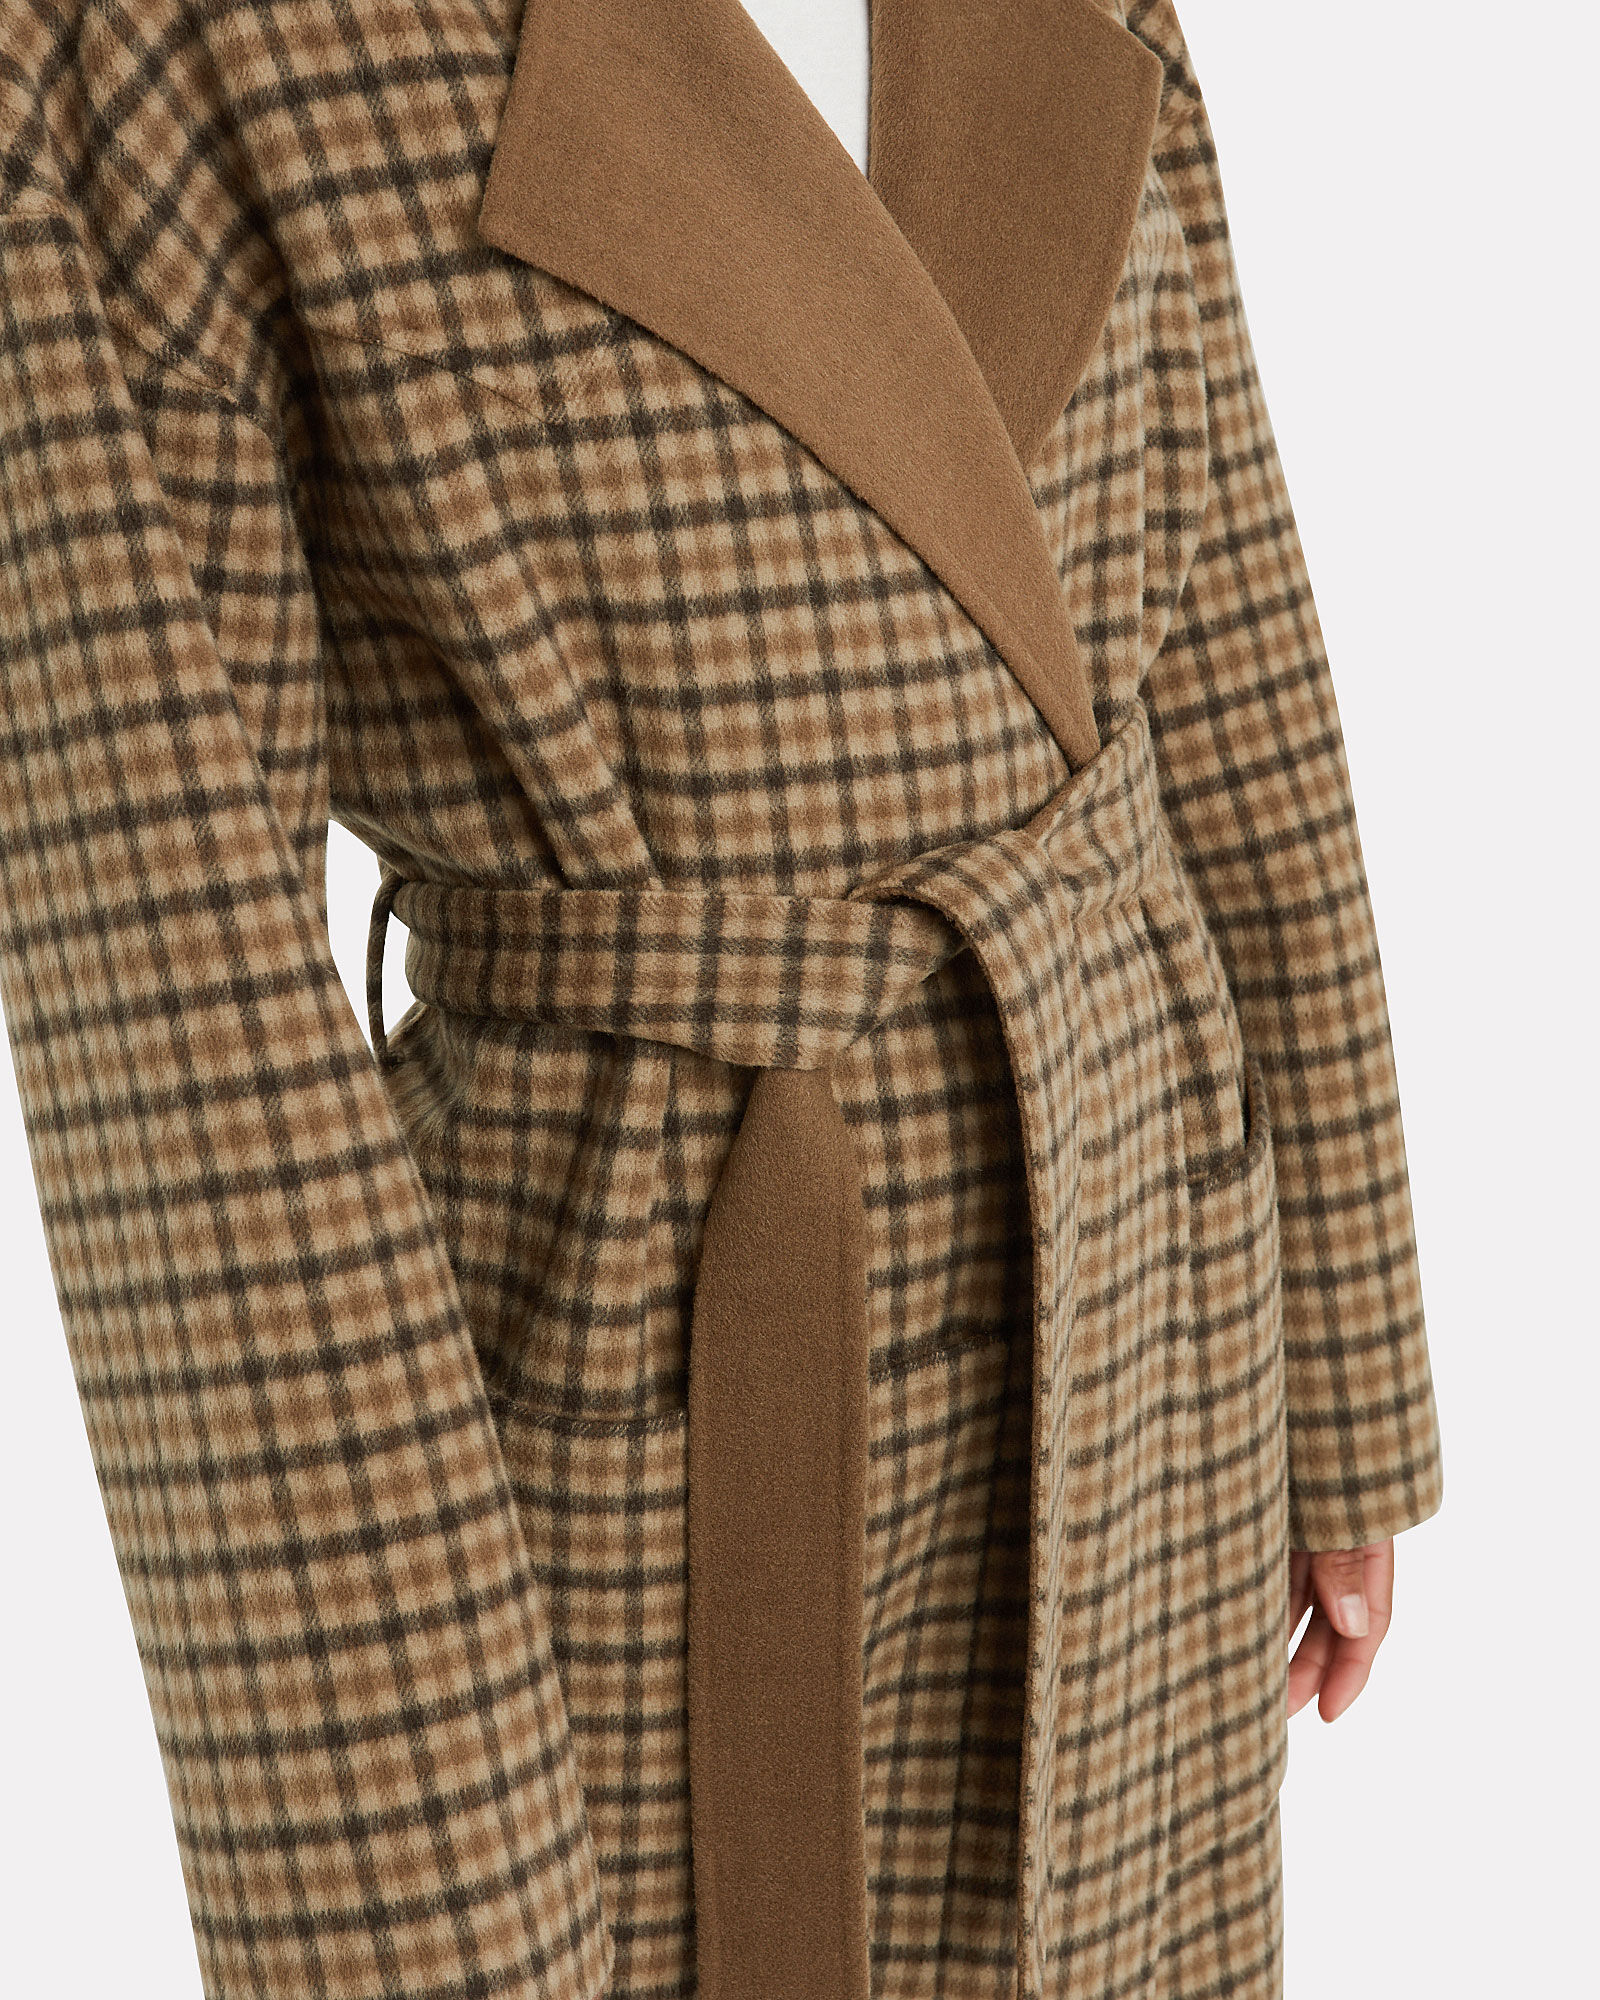 Alamo Plaid Wool Wrap Coat, BROWN, hi-res